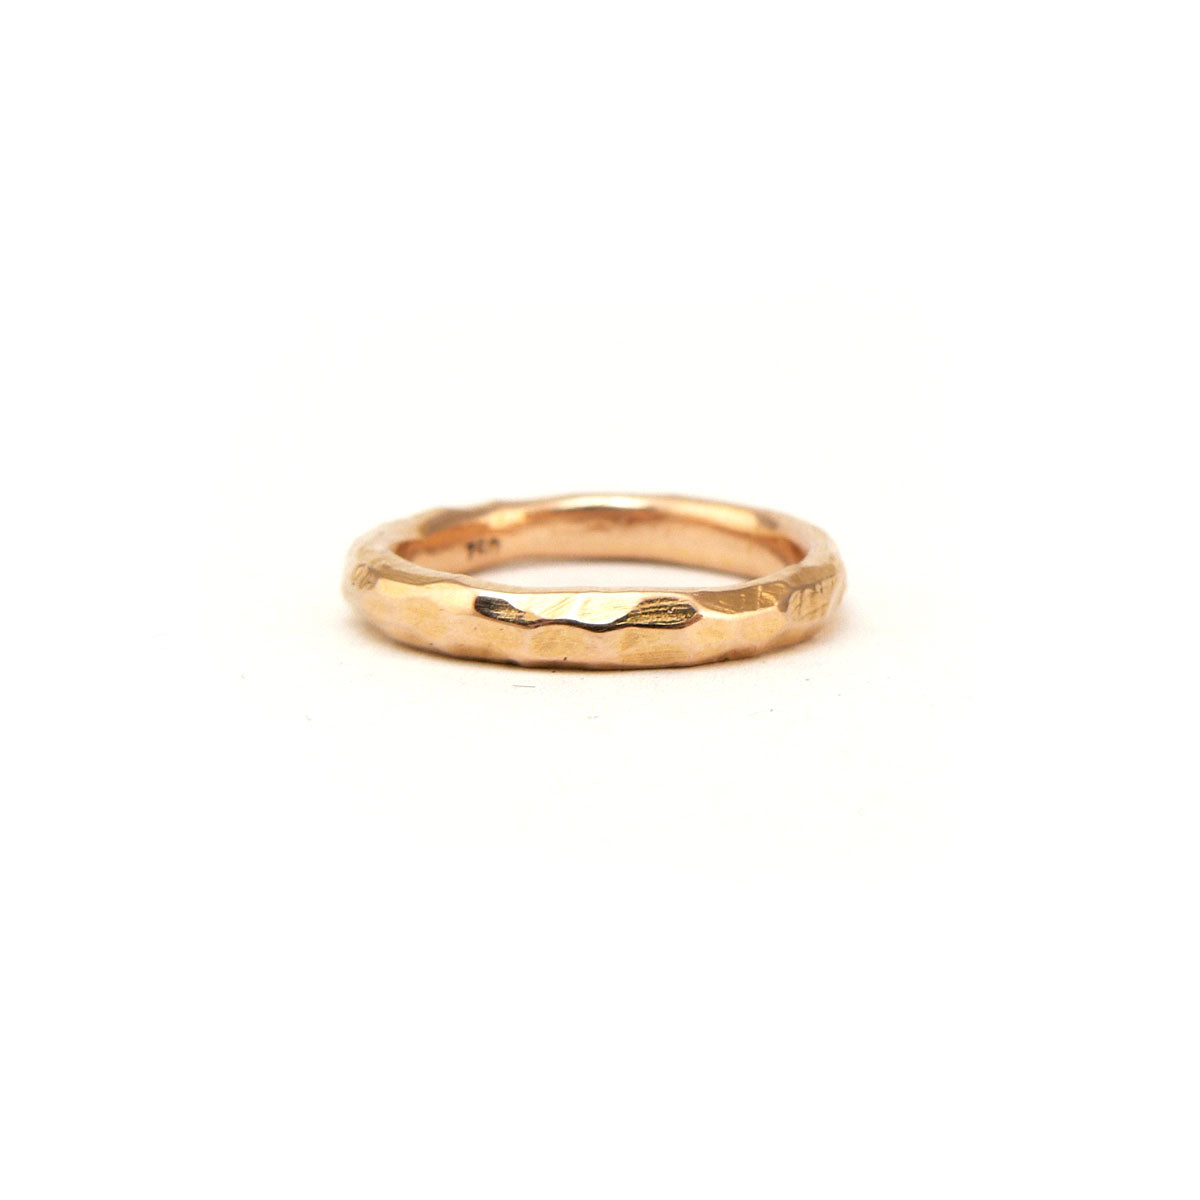 Organic Handmade 18ct rose gold wedding band, bespoke custom handmade